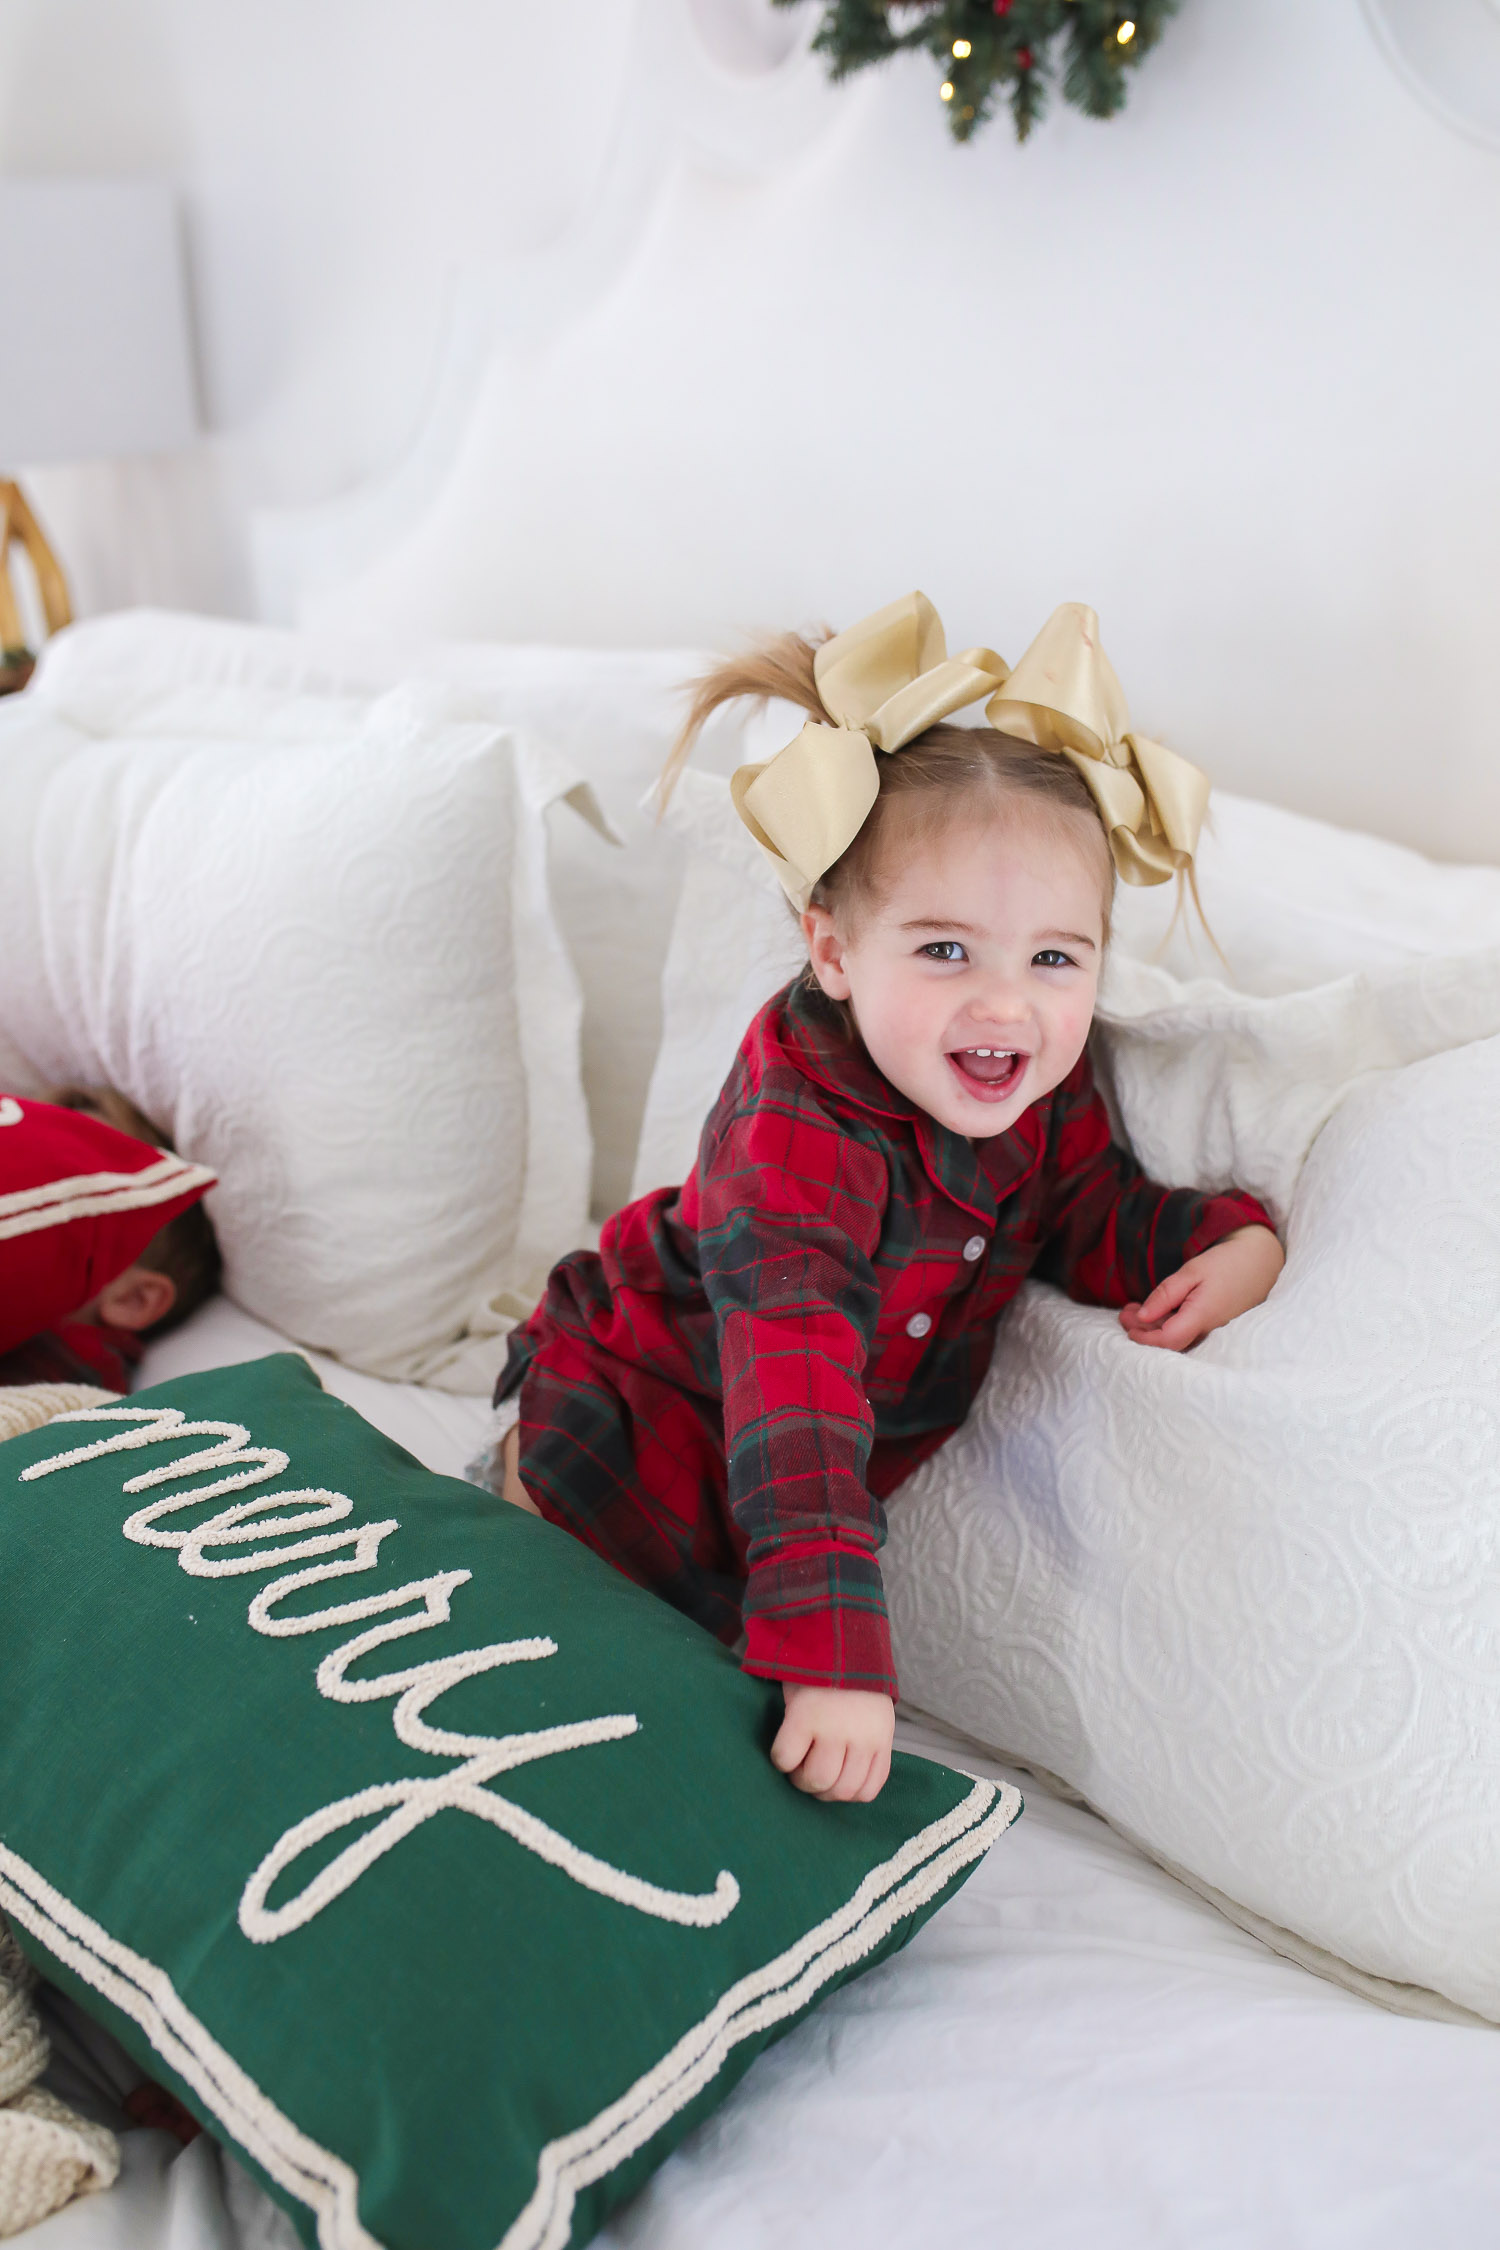 Matching Family Pajamas by popular US fashion blog, The Sweetest Thing: image of a young girl sitting on a bed with white bedding, a joy throw pillow, a merry throw pillow and a mini Christmas wreath hanging on the headboard and wearing a The Company Store Family Flannel Company Cotton™ Girls' Sleepshirt.